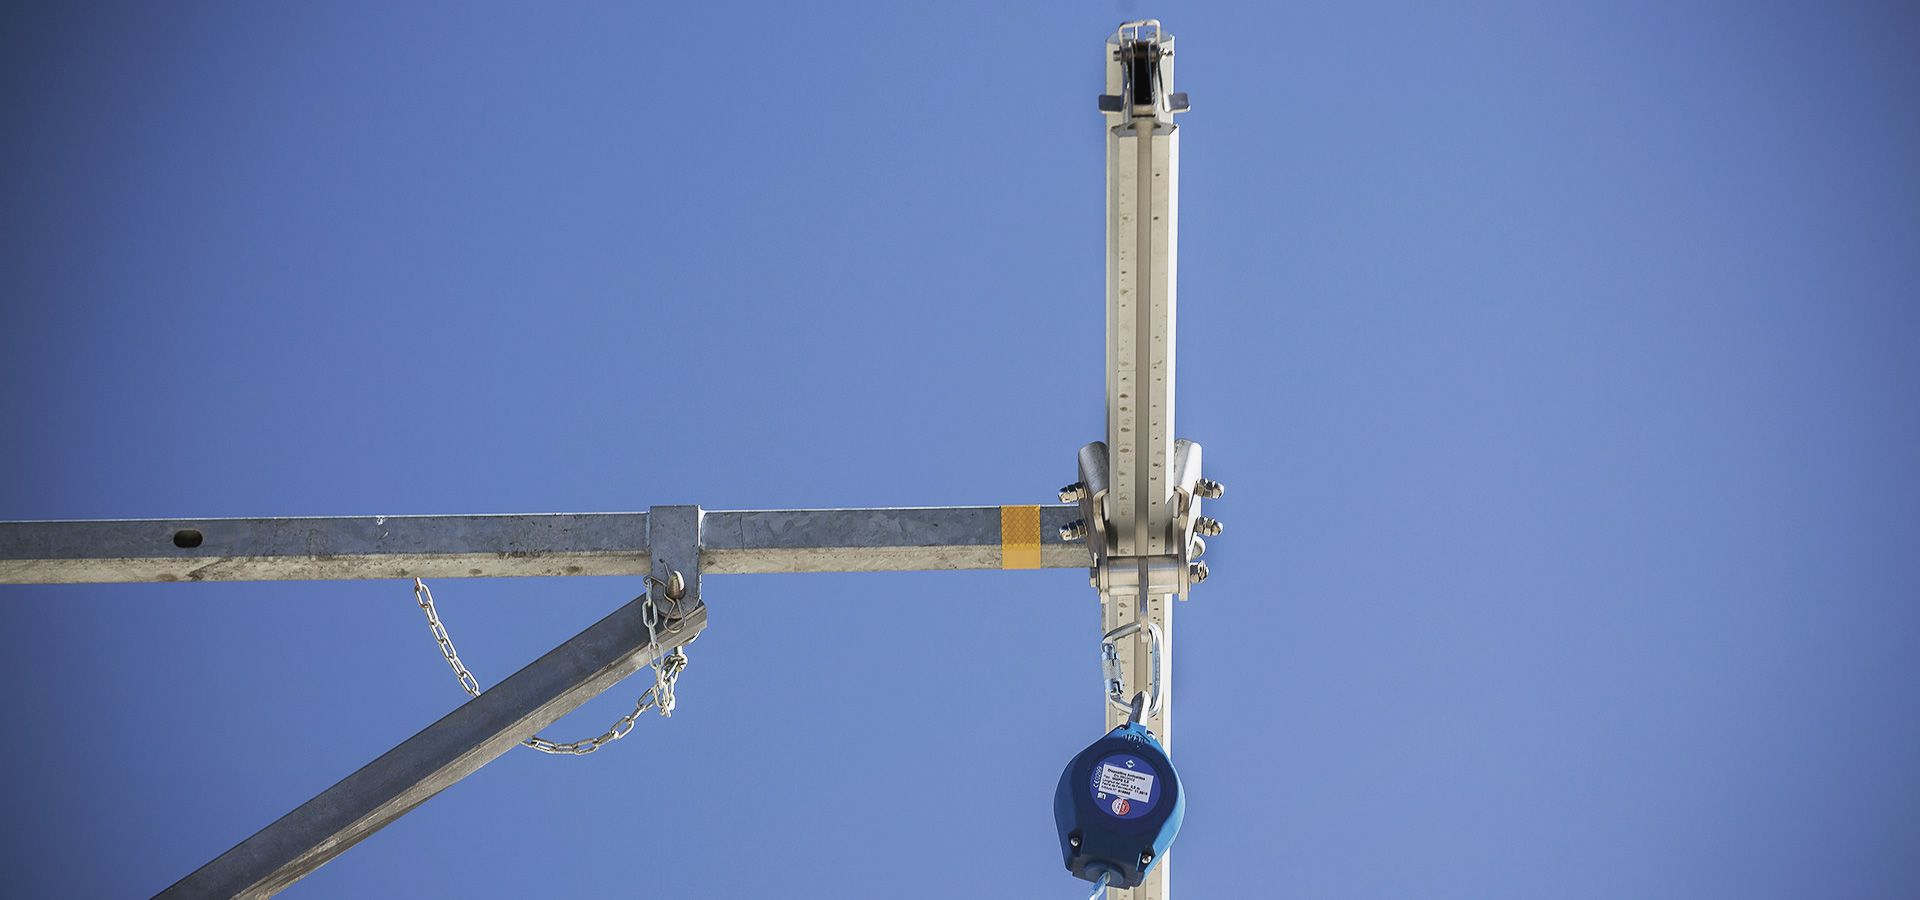 Fall arrest system for securing the access on top of trucks